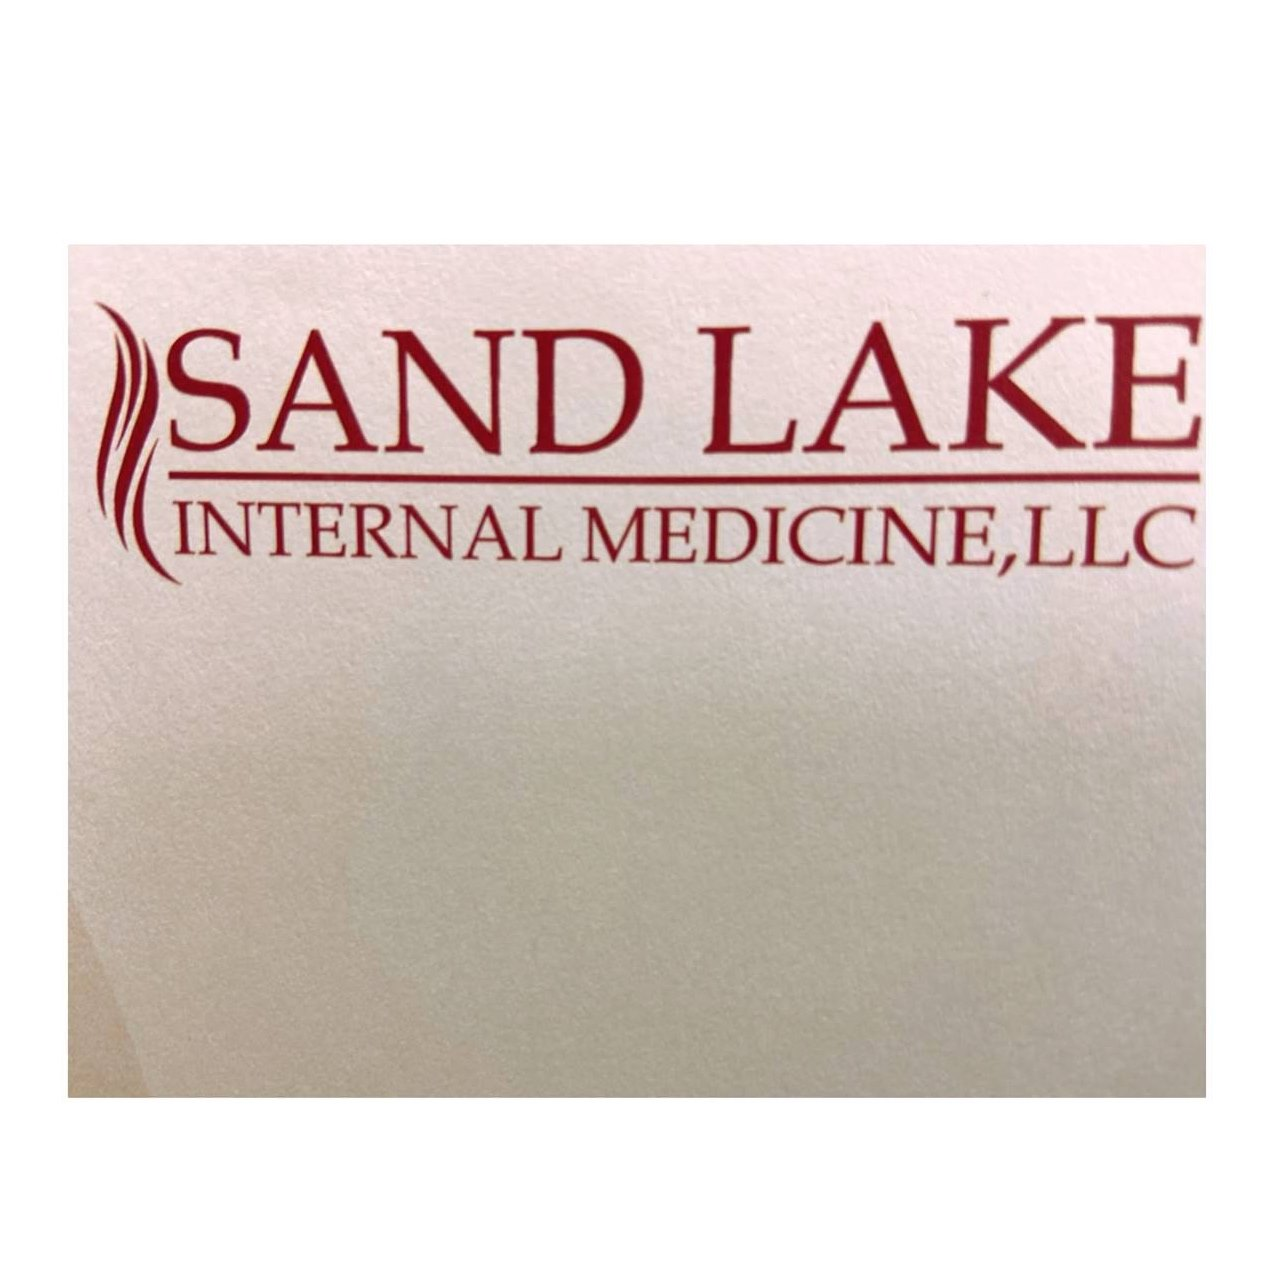 SandLake Internal Medicine Dr. Phillips Chamber of Commerce Member